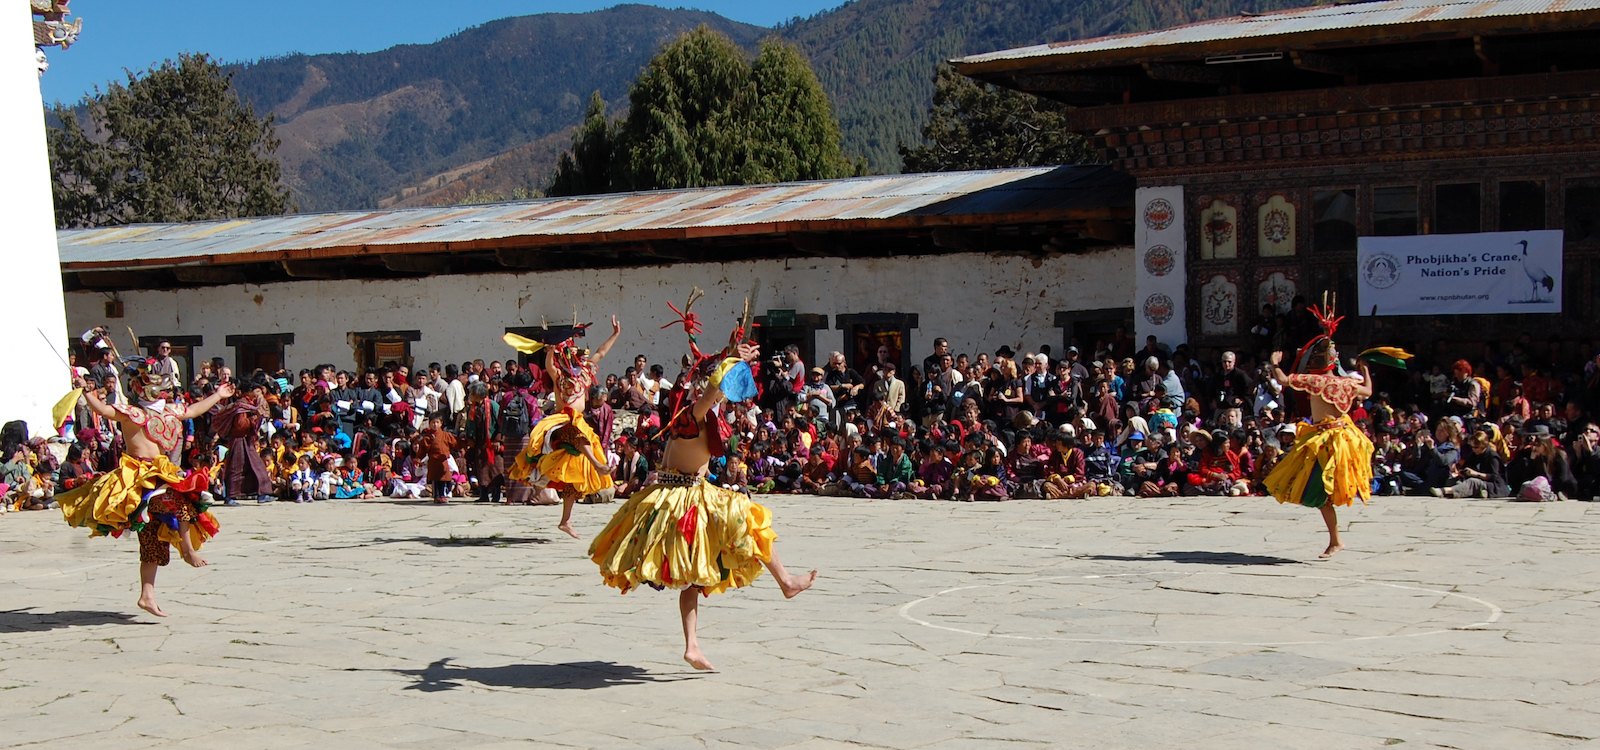 dancers at Crane festival Phobjikha Valley, Bhutan